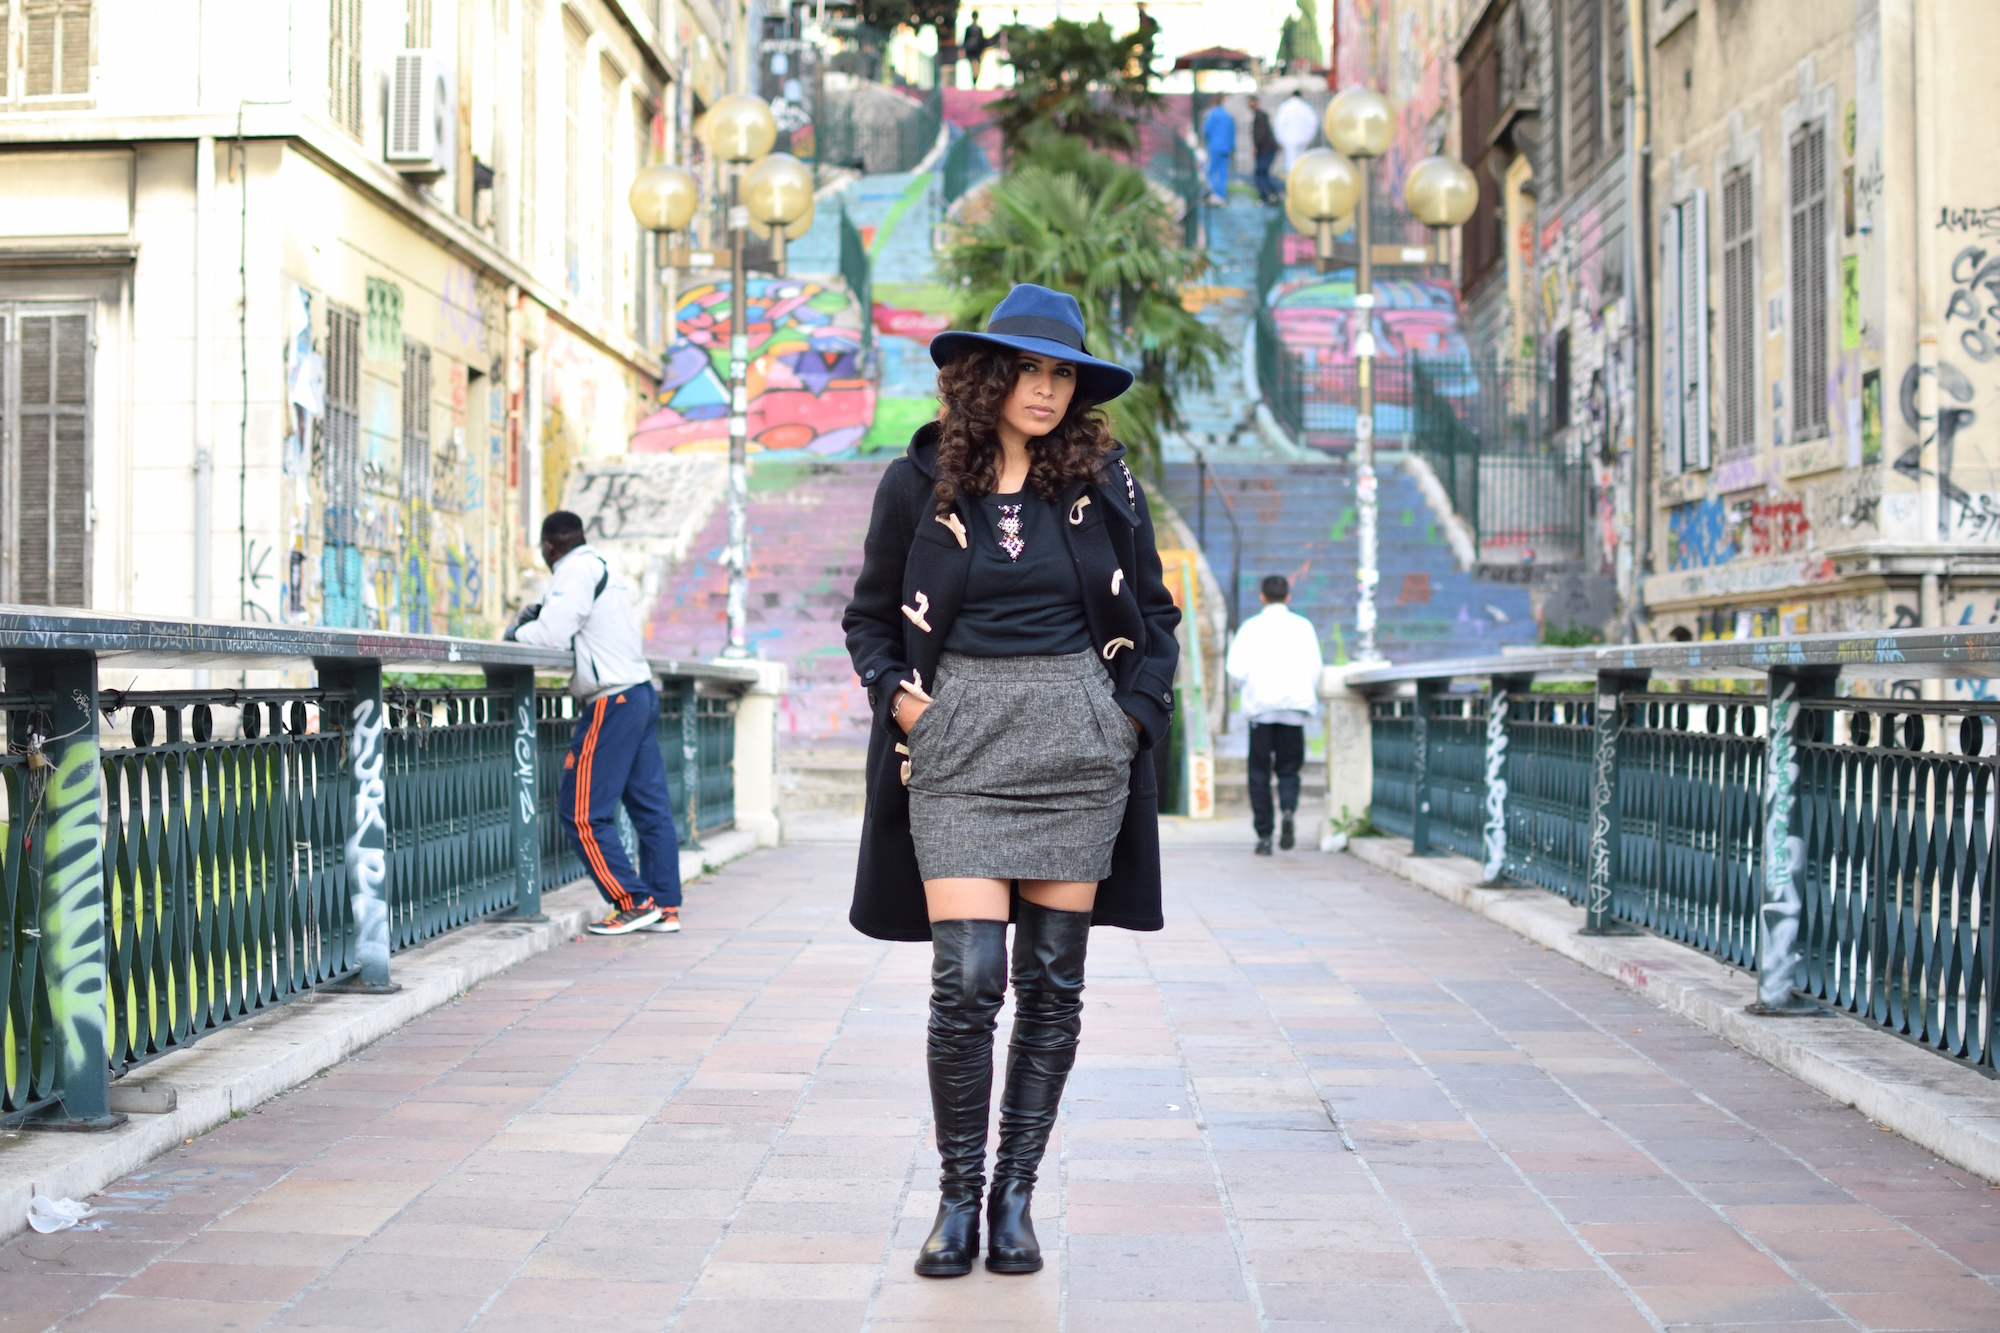 Le faux sage | LovaLinda | Blog Mode Look Marseille | Fedora Catarzi x Duffle coat Saint Laurent x Clutch Pierre Hardy x Jumper Sandro x Skirt Sandro x Over The Knees Boots Stratégia